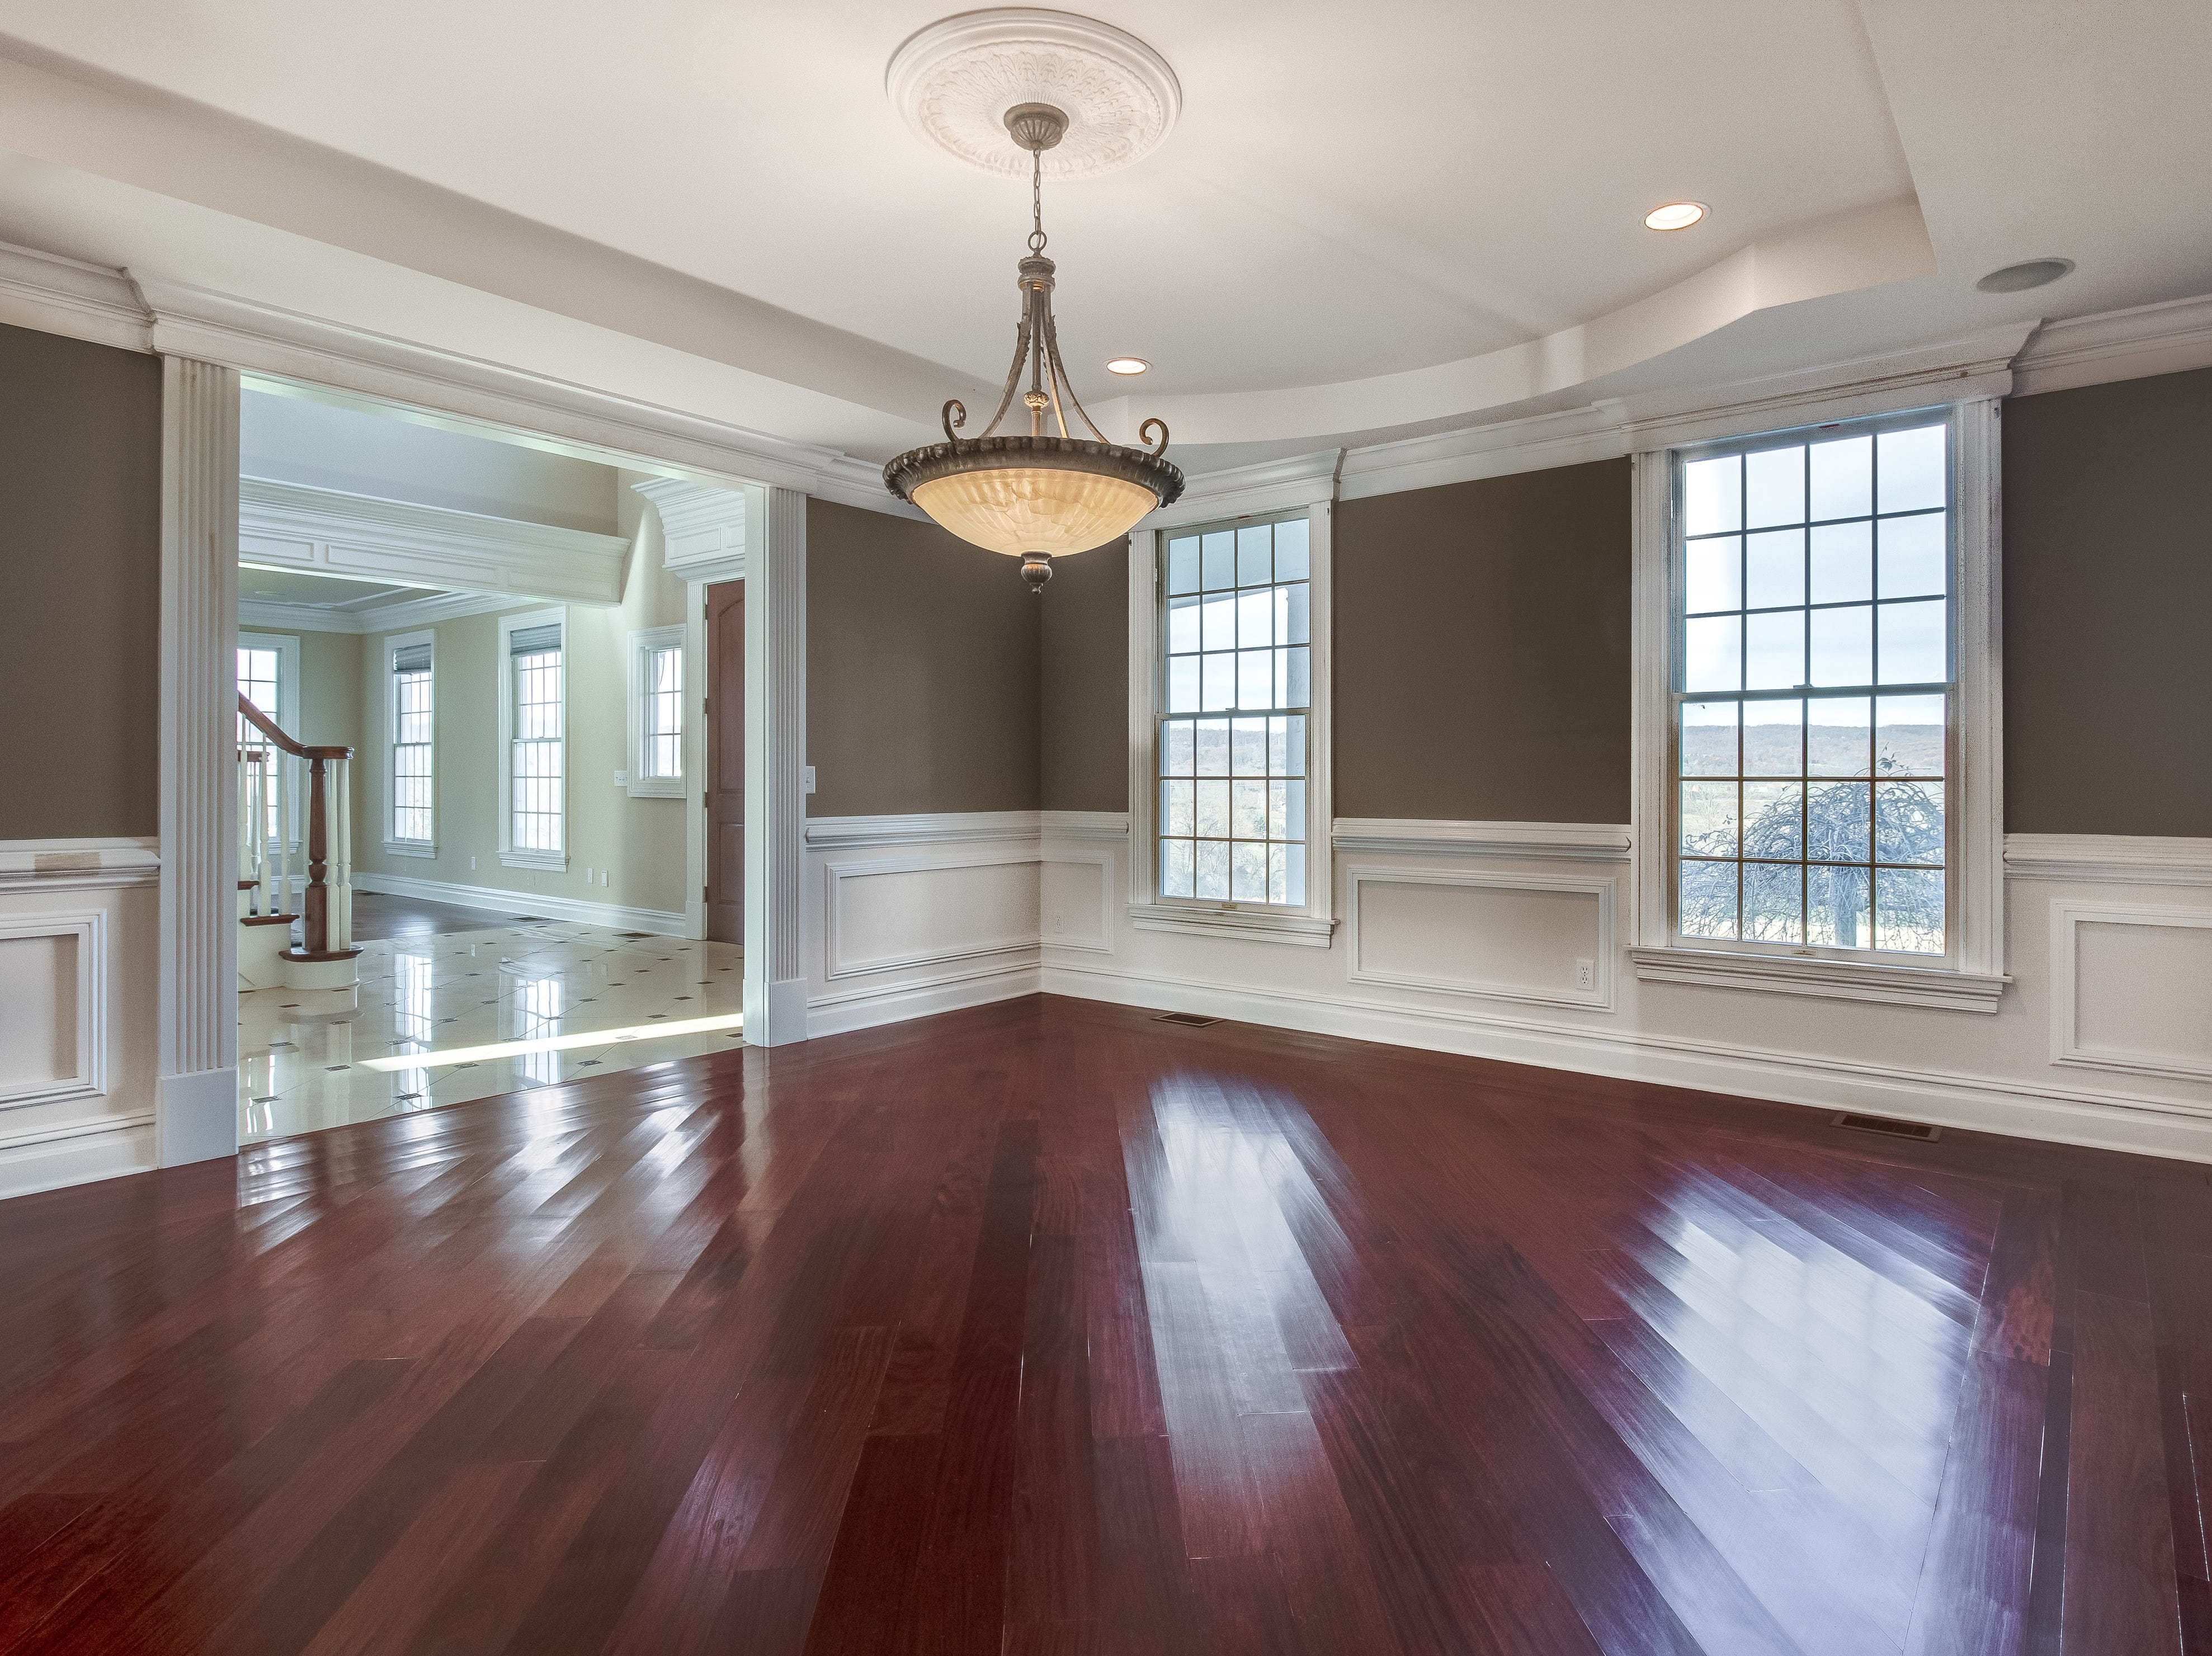 The  banquet-size formal dining room off the foyer has wainscoting, a tray ceiling with pendant and recessed lighting, large divided light windows and gleaming hardwood floors.